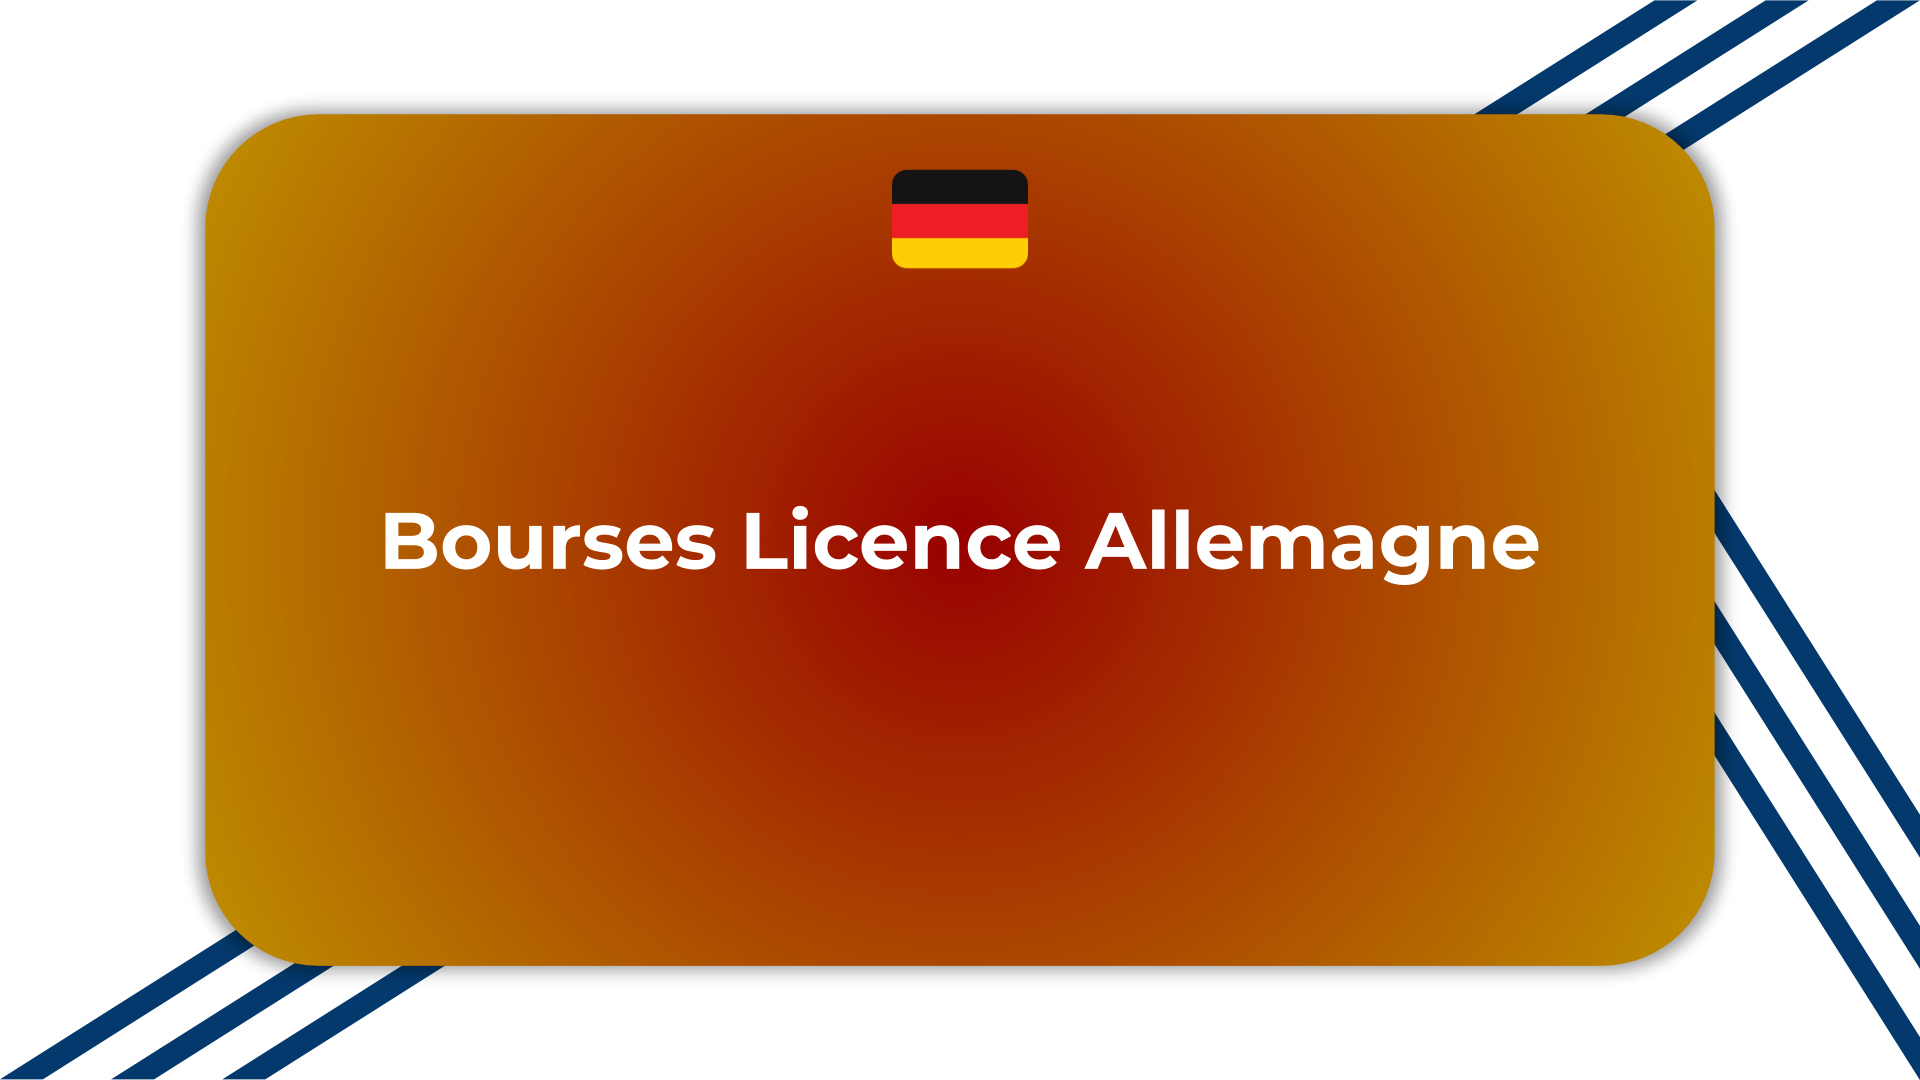 Bourses Licence Allemagne